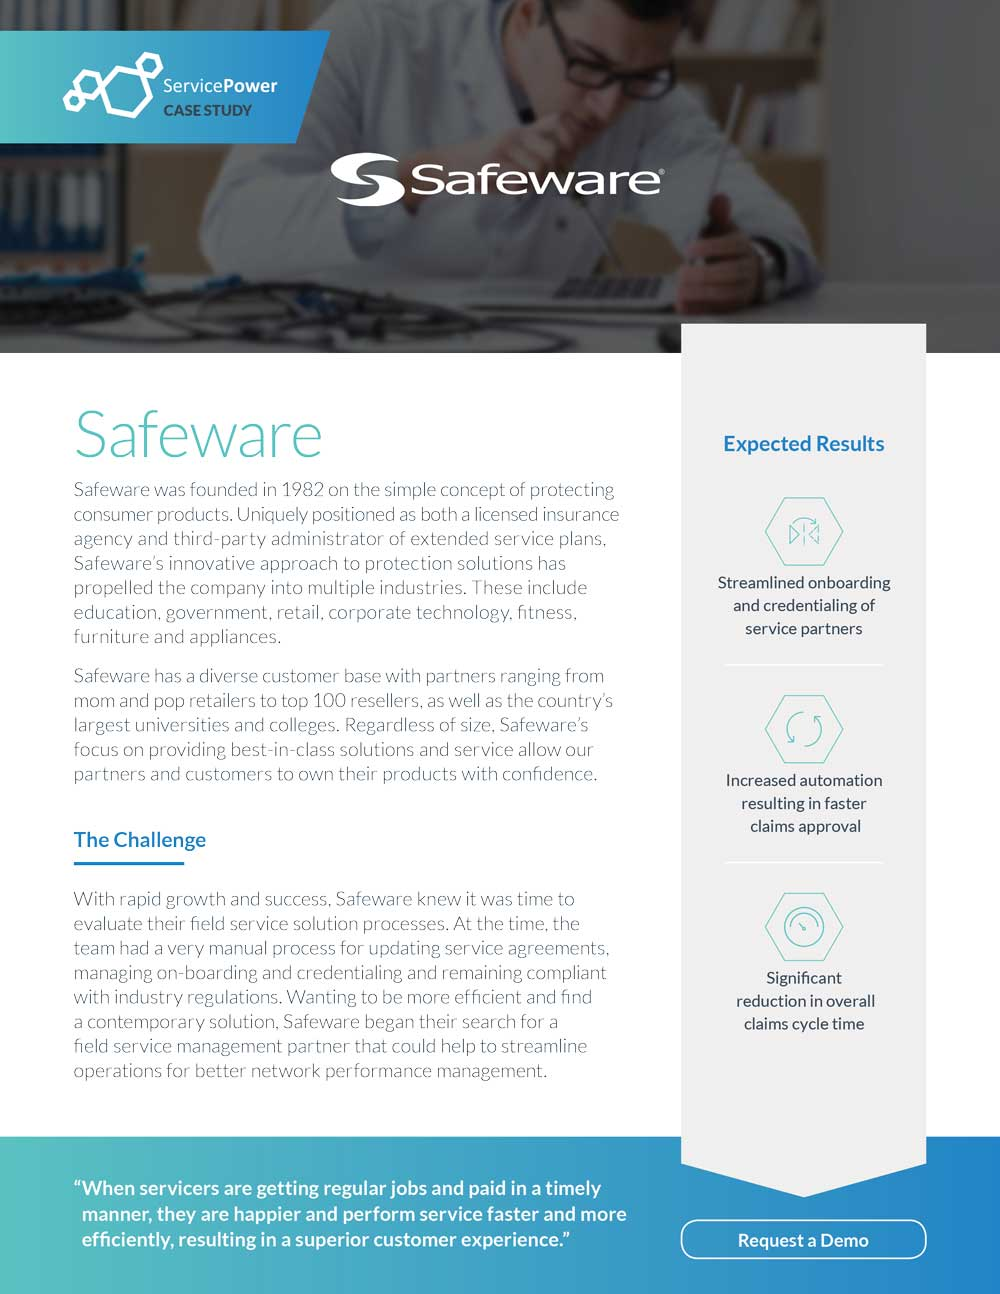 Safeware Utilizes Onboarding and Credentialing